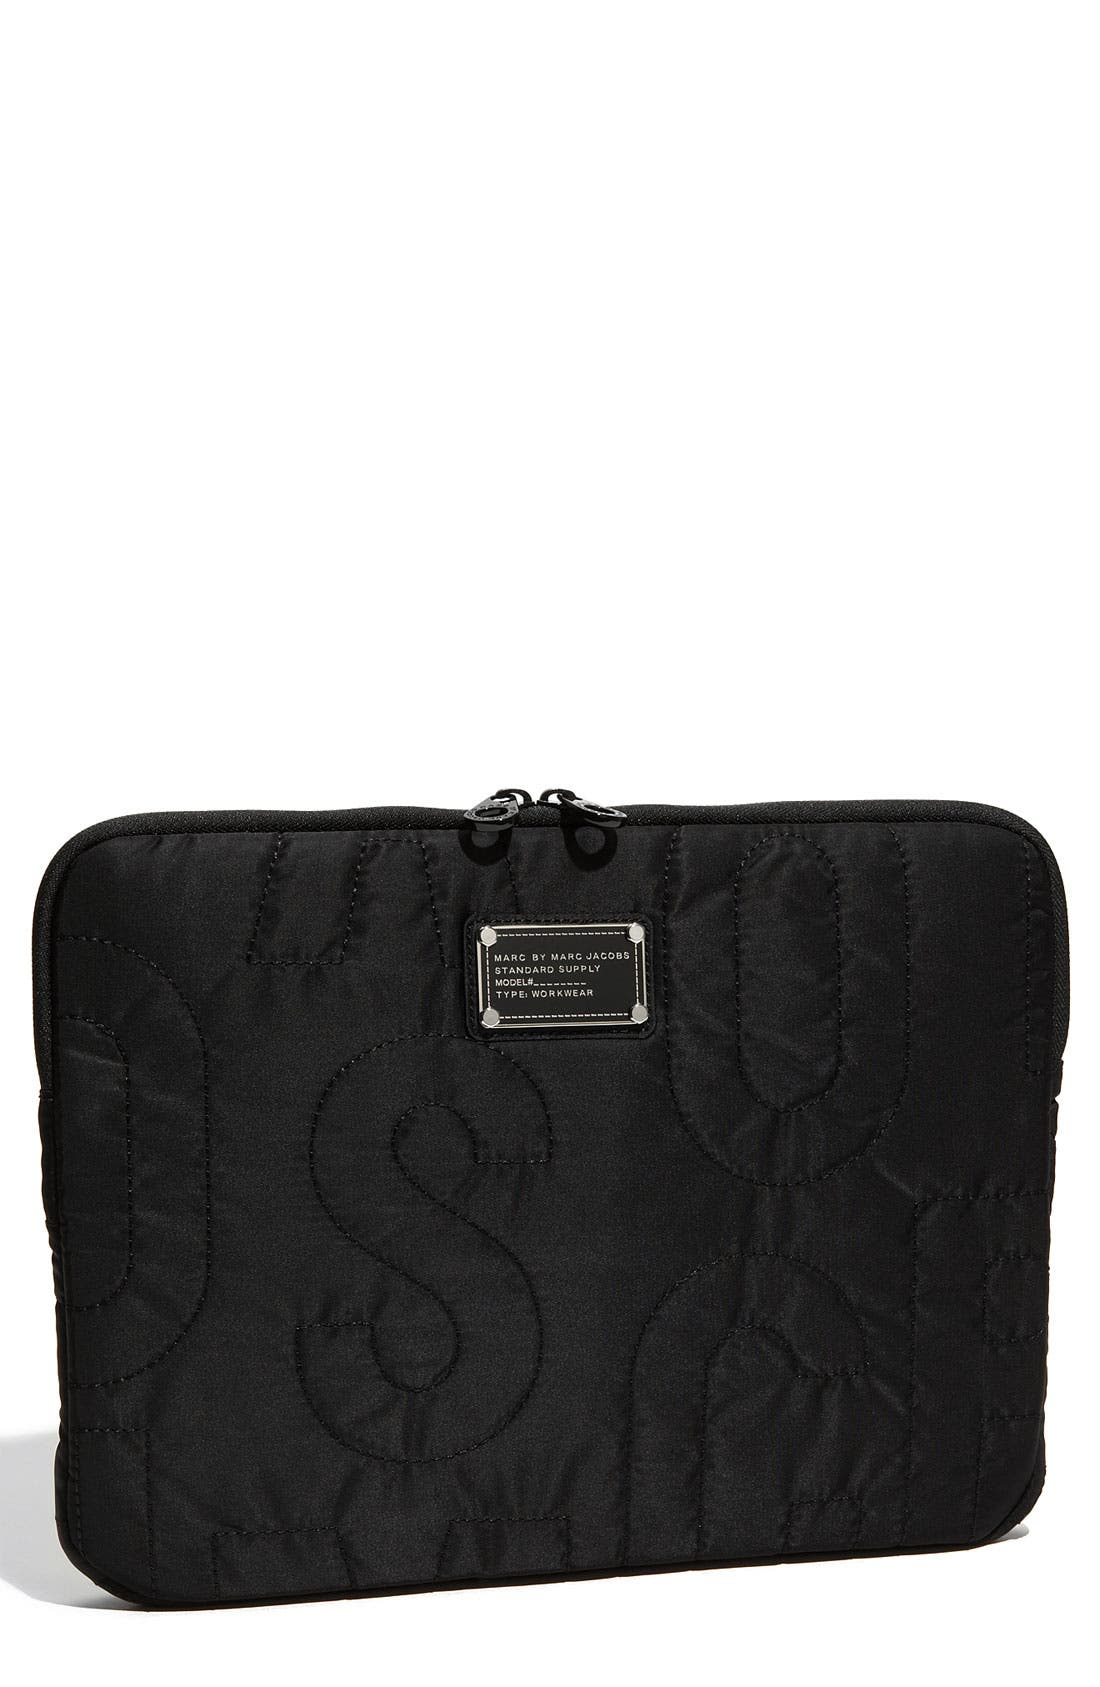 Main Image - MARC BY MARC JACOBS 'Pretty Nylon' Computer Case (13 Inch)